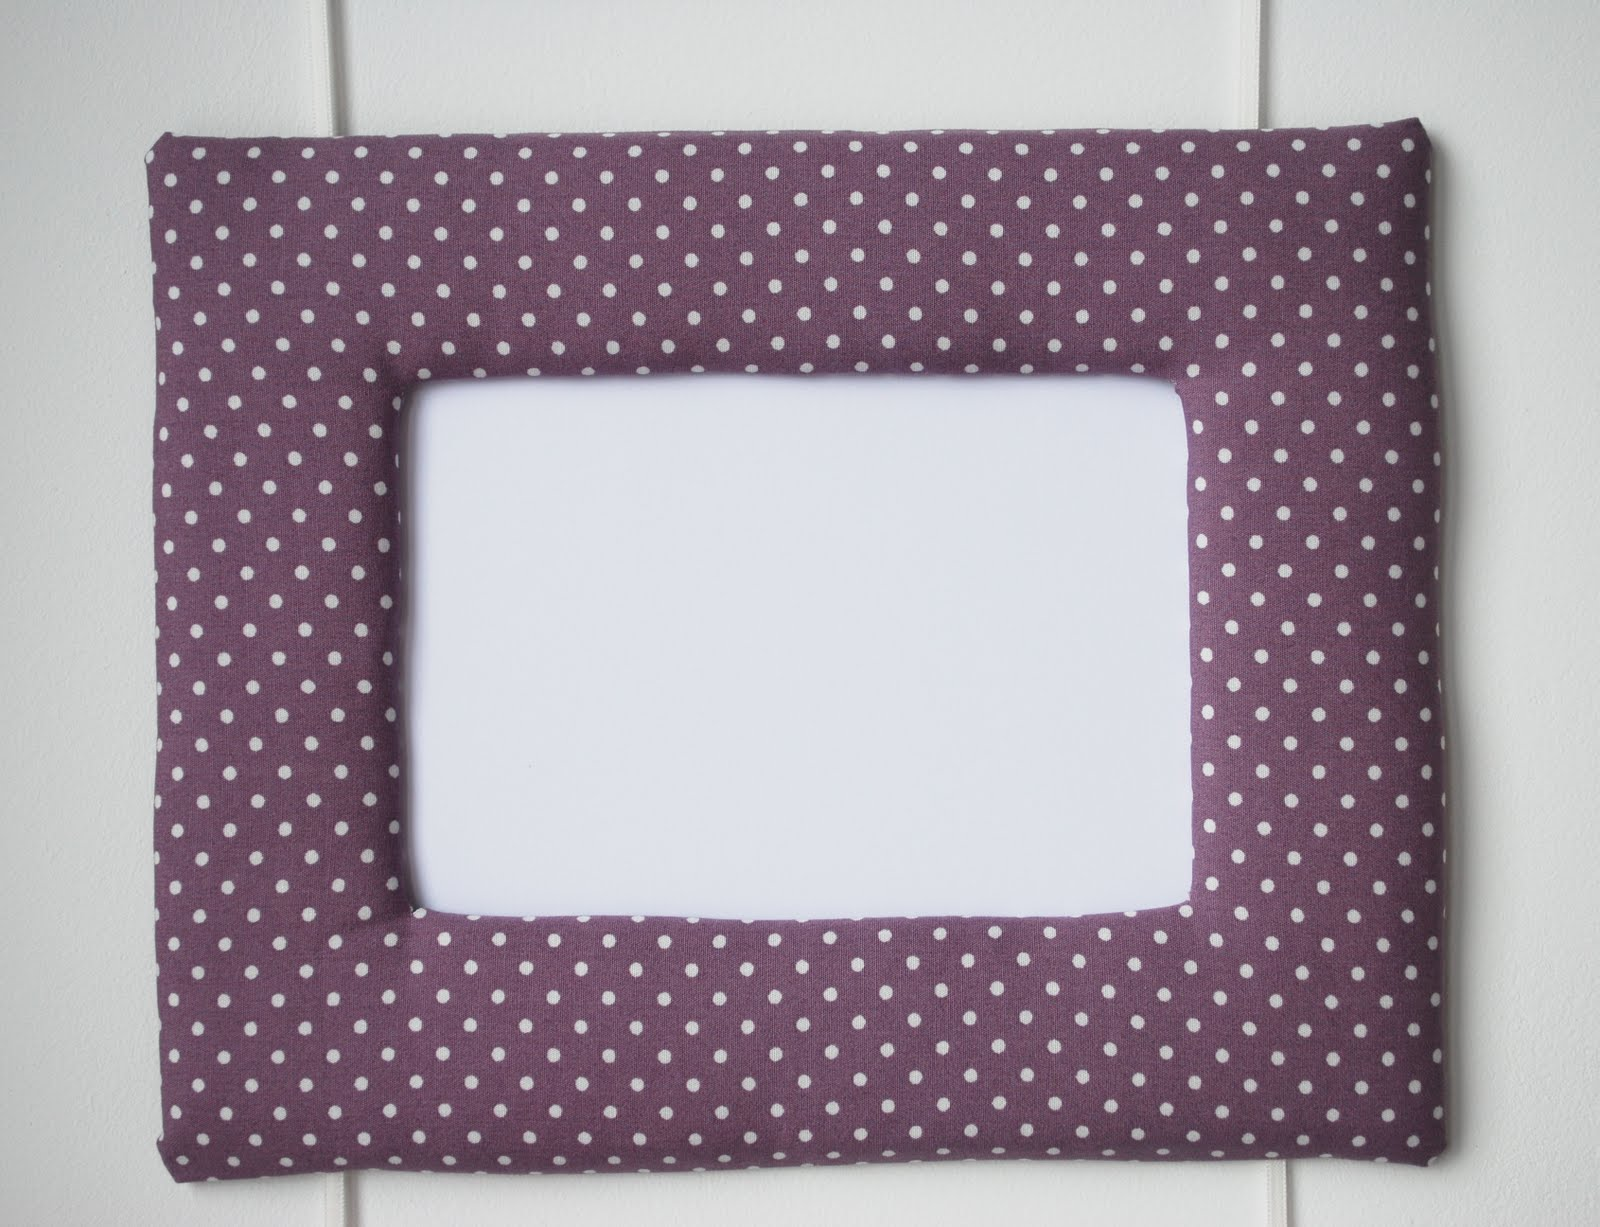 rosie simons graphic and surface design new fabric photo ForFabric Picture Frames